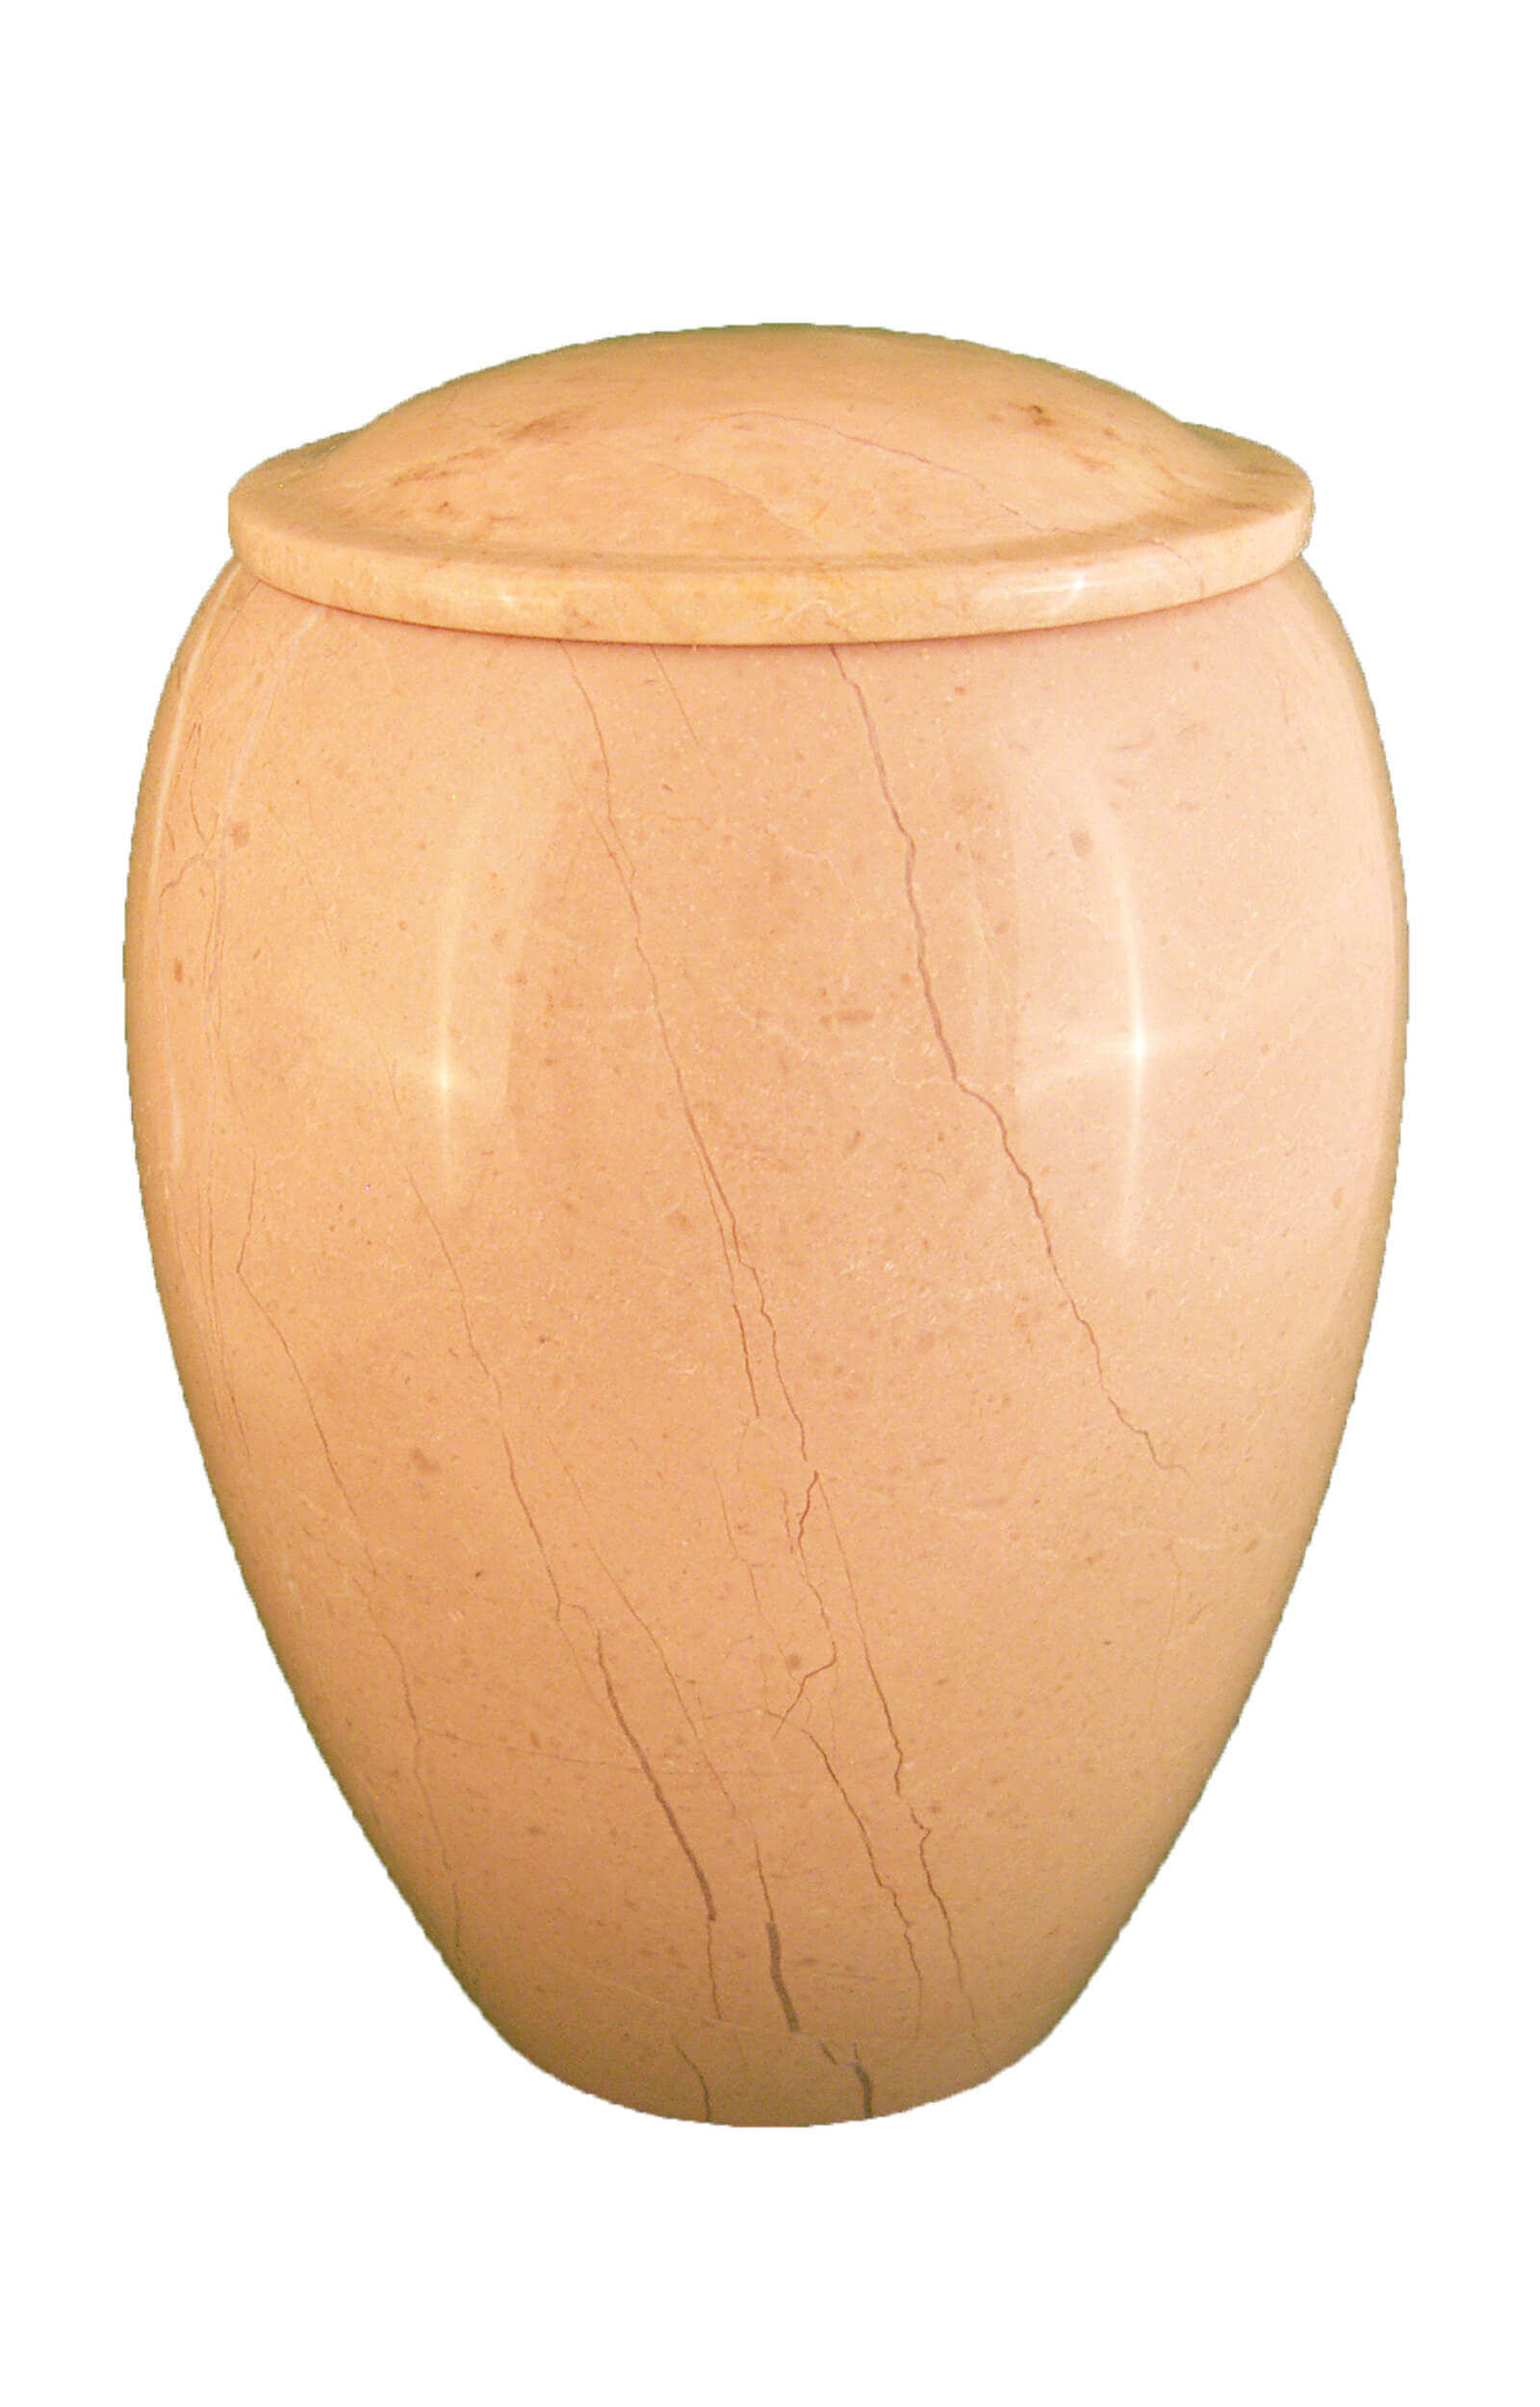 en MA2941 Verona marbel urn for human ashes beige cream white funeral urns on sale